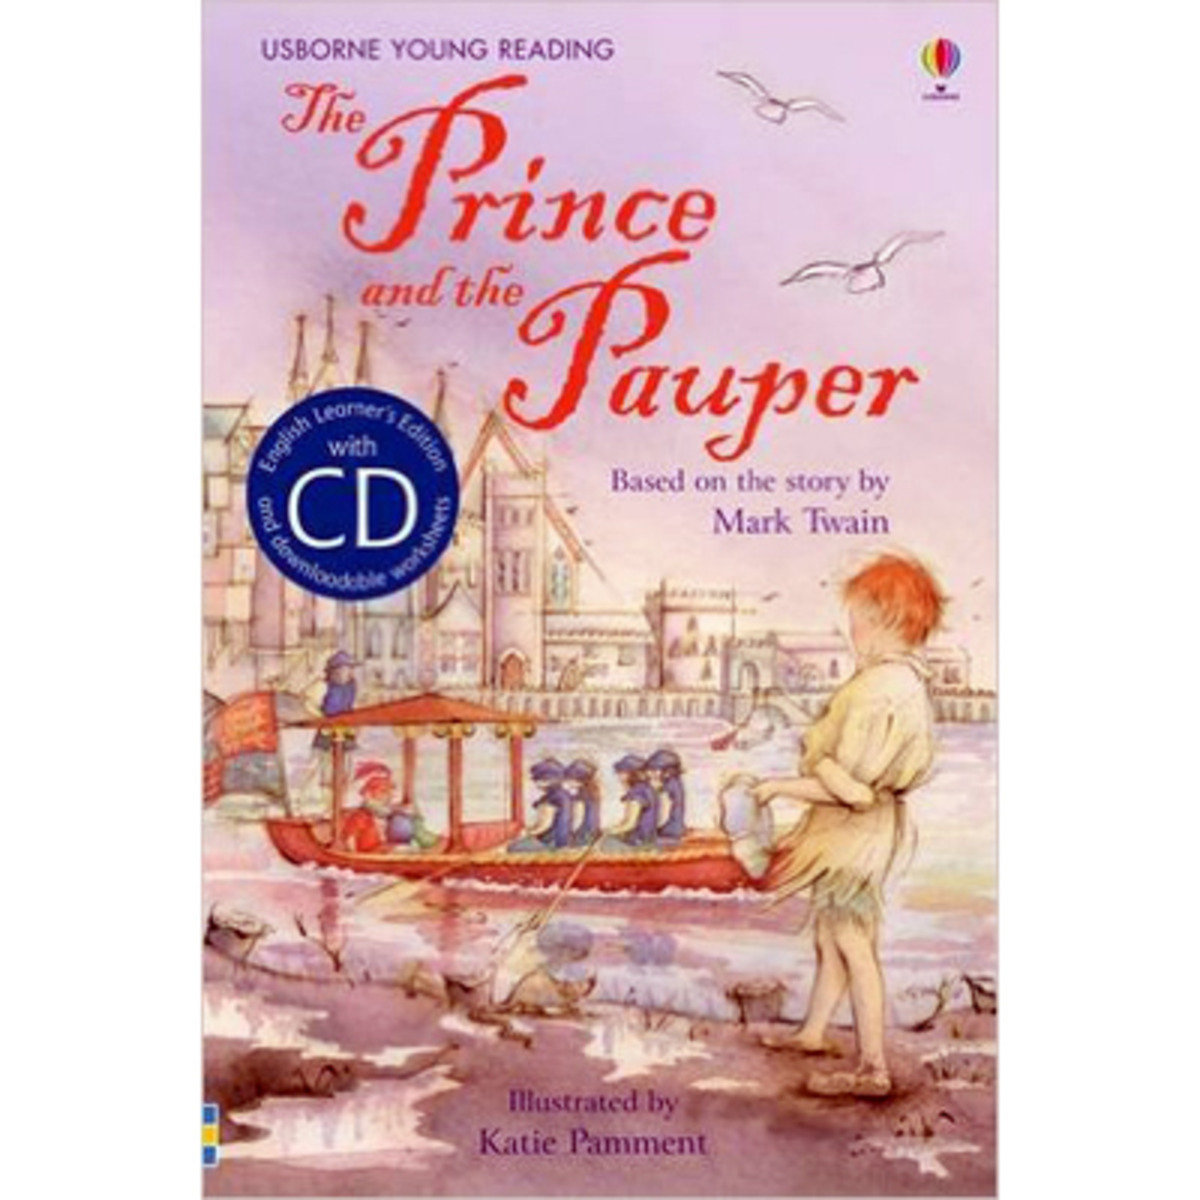 The Prince and the Pauper-Young Reading 2 with CD